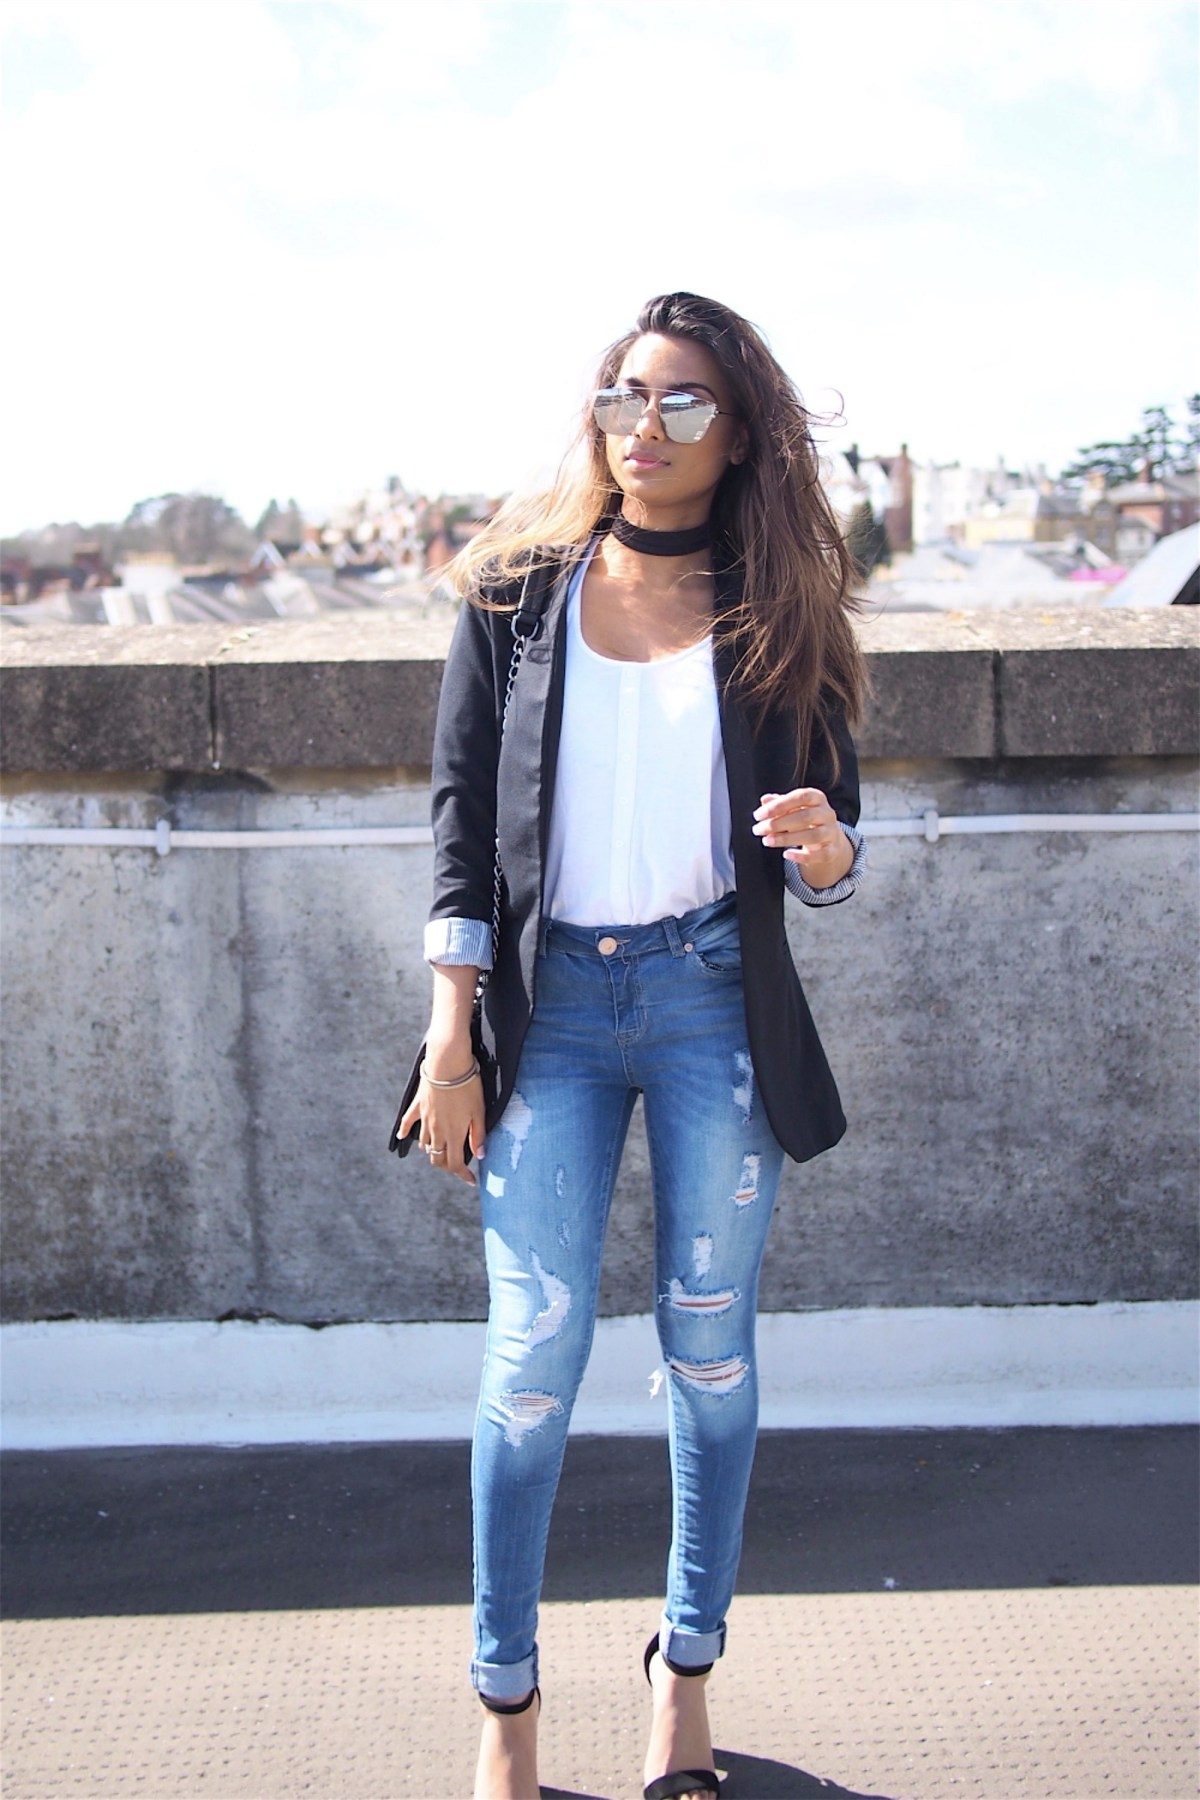 boohoo blazer outfit